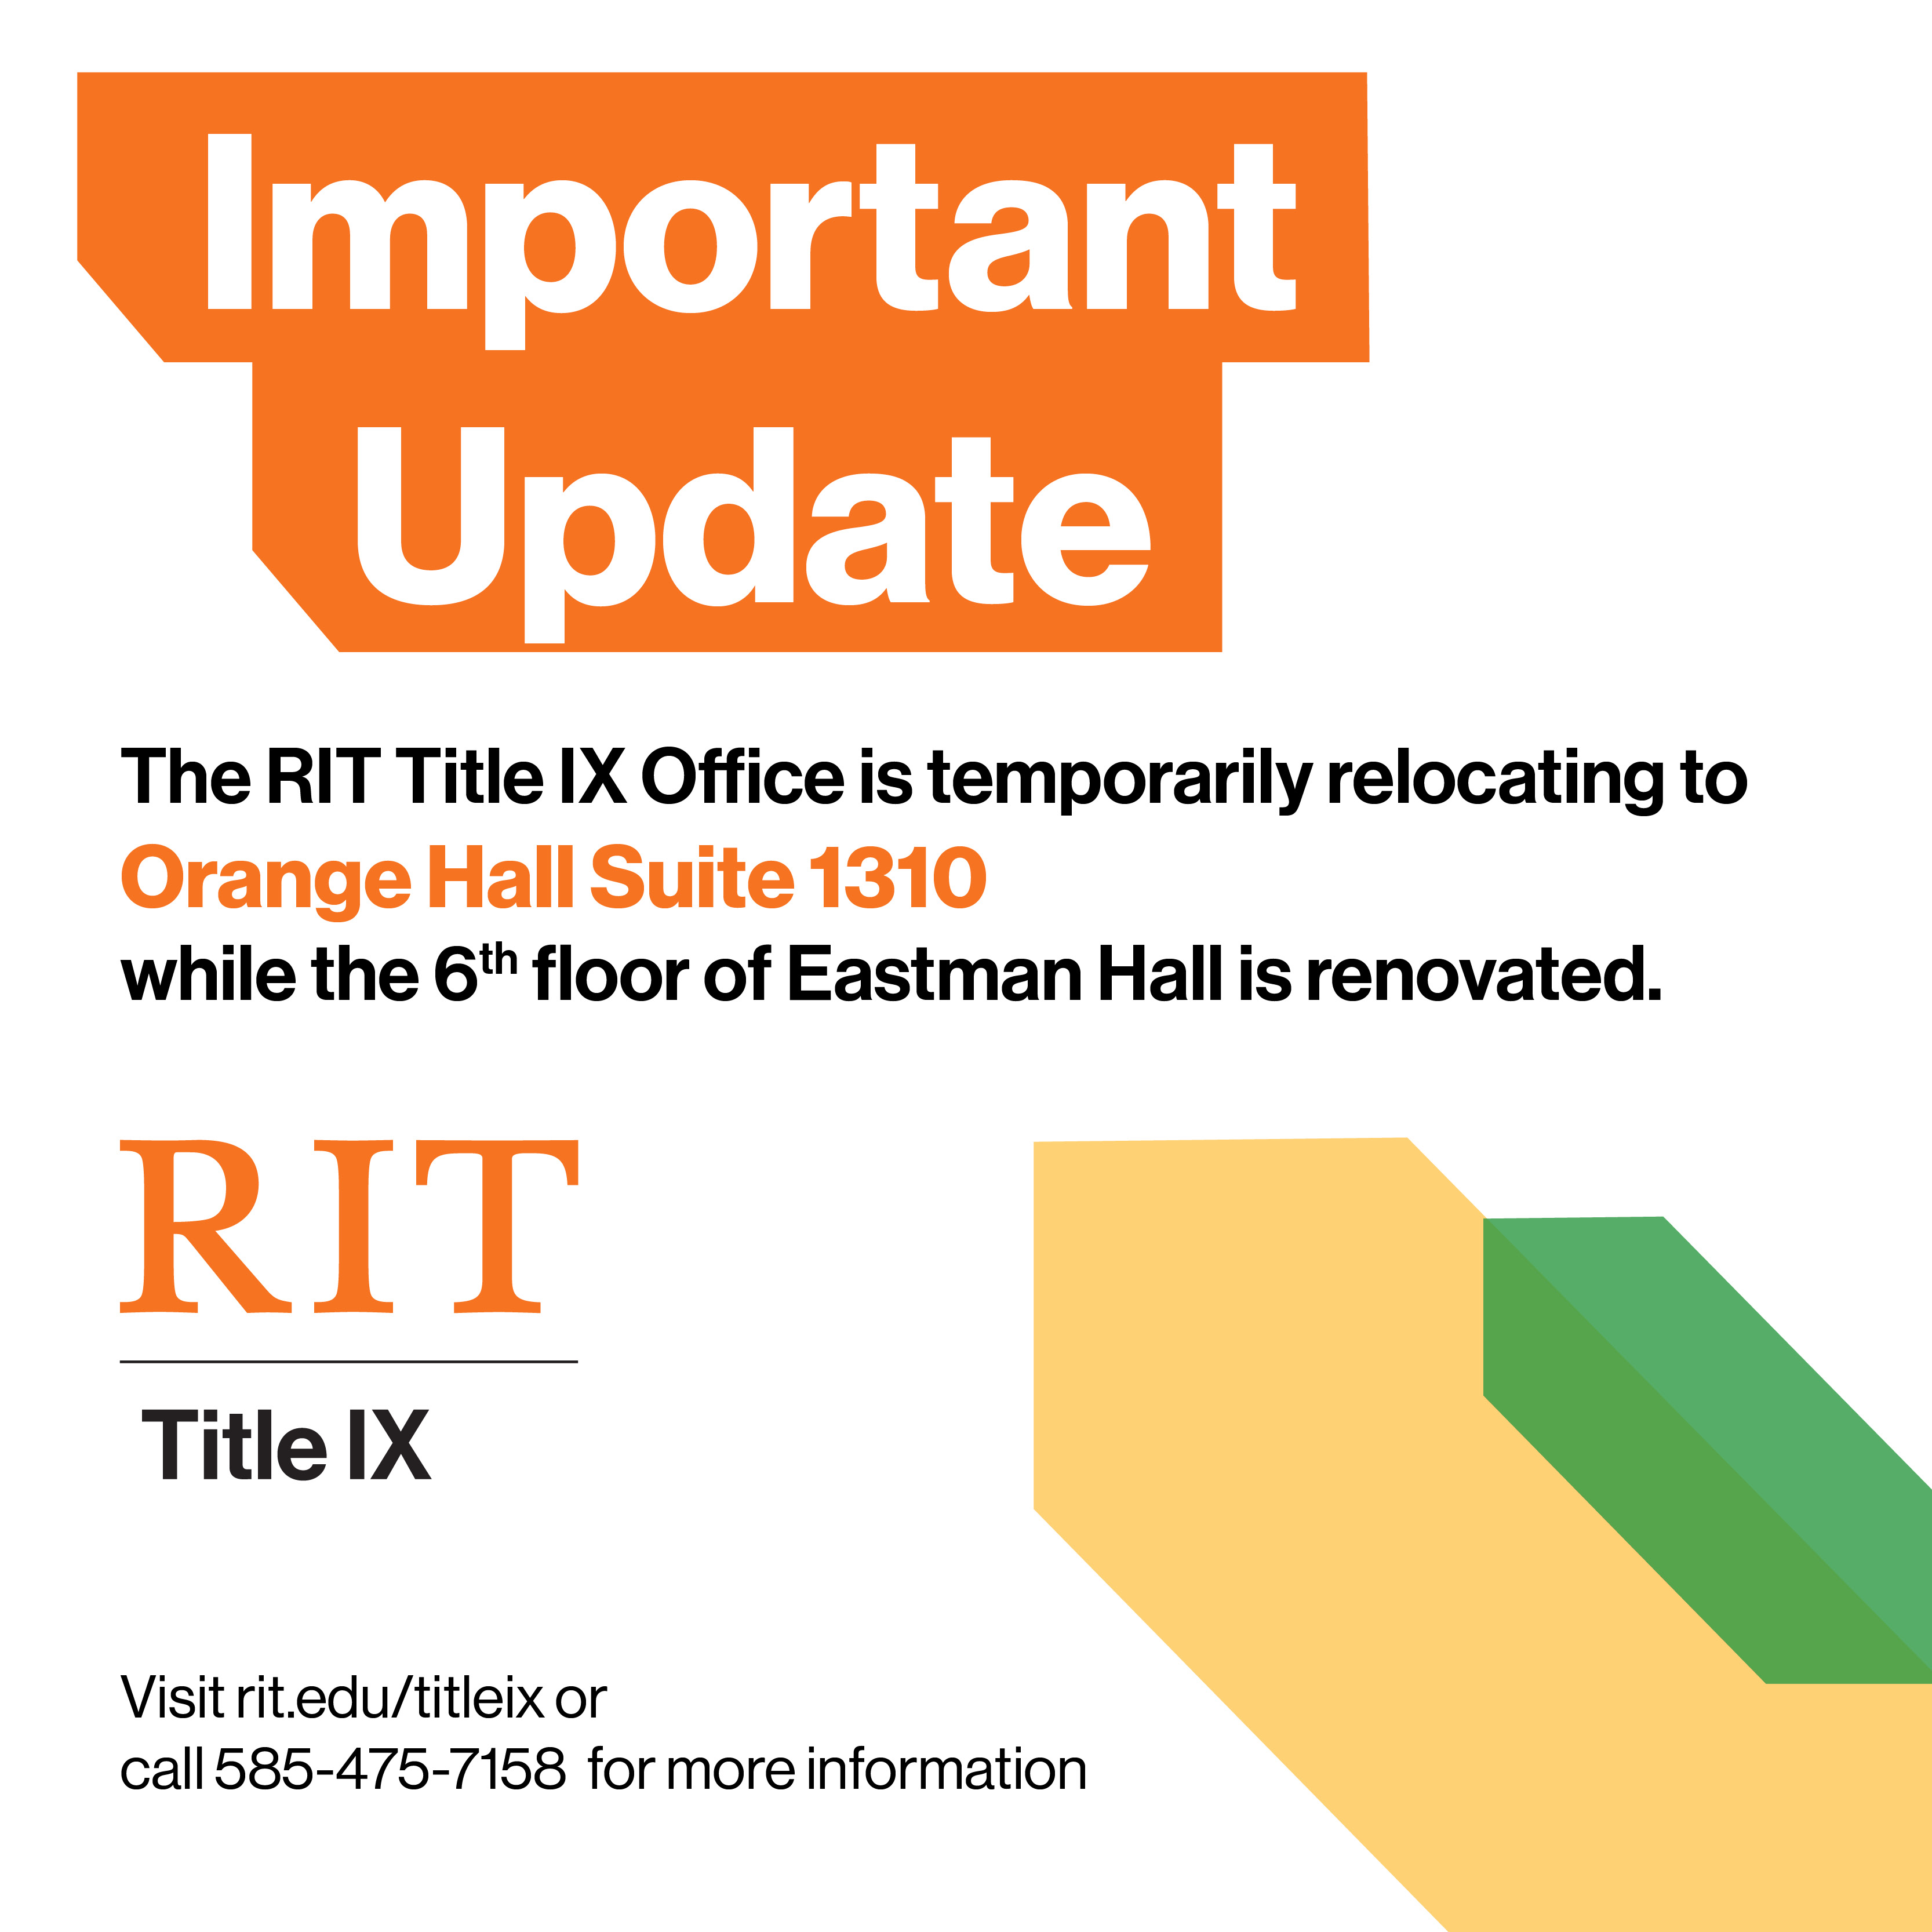 The RIT Title IX Office is temporarily relocating to Orange  Hall Suite 1310.